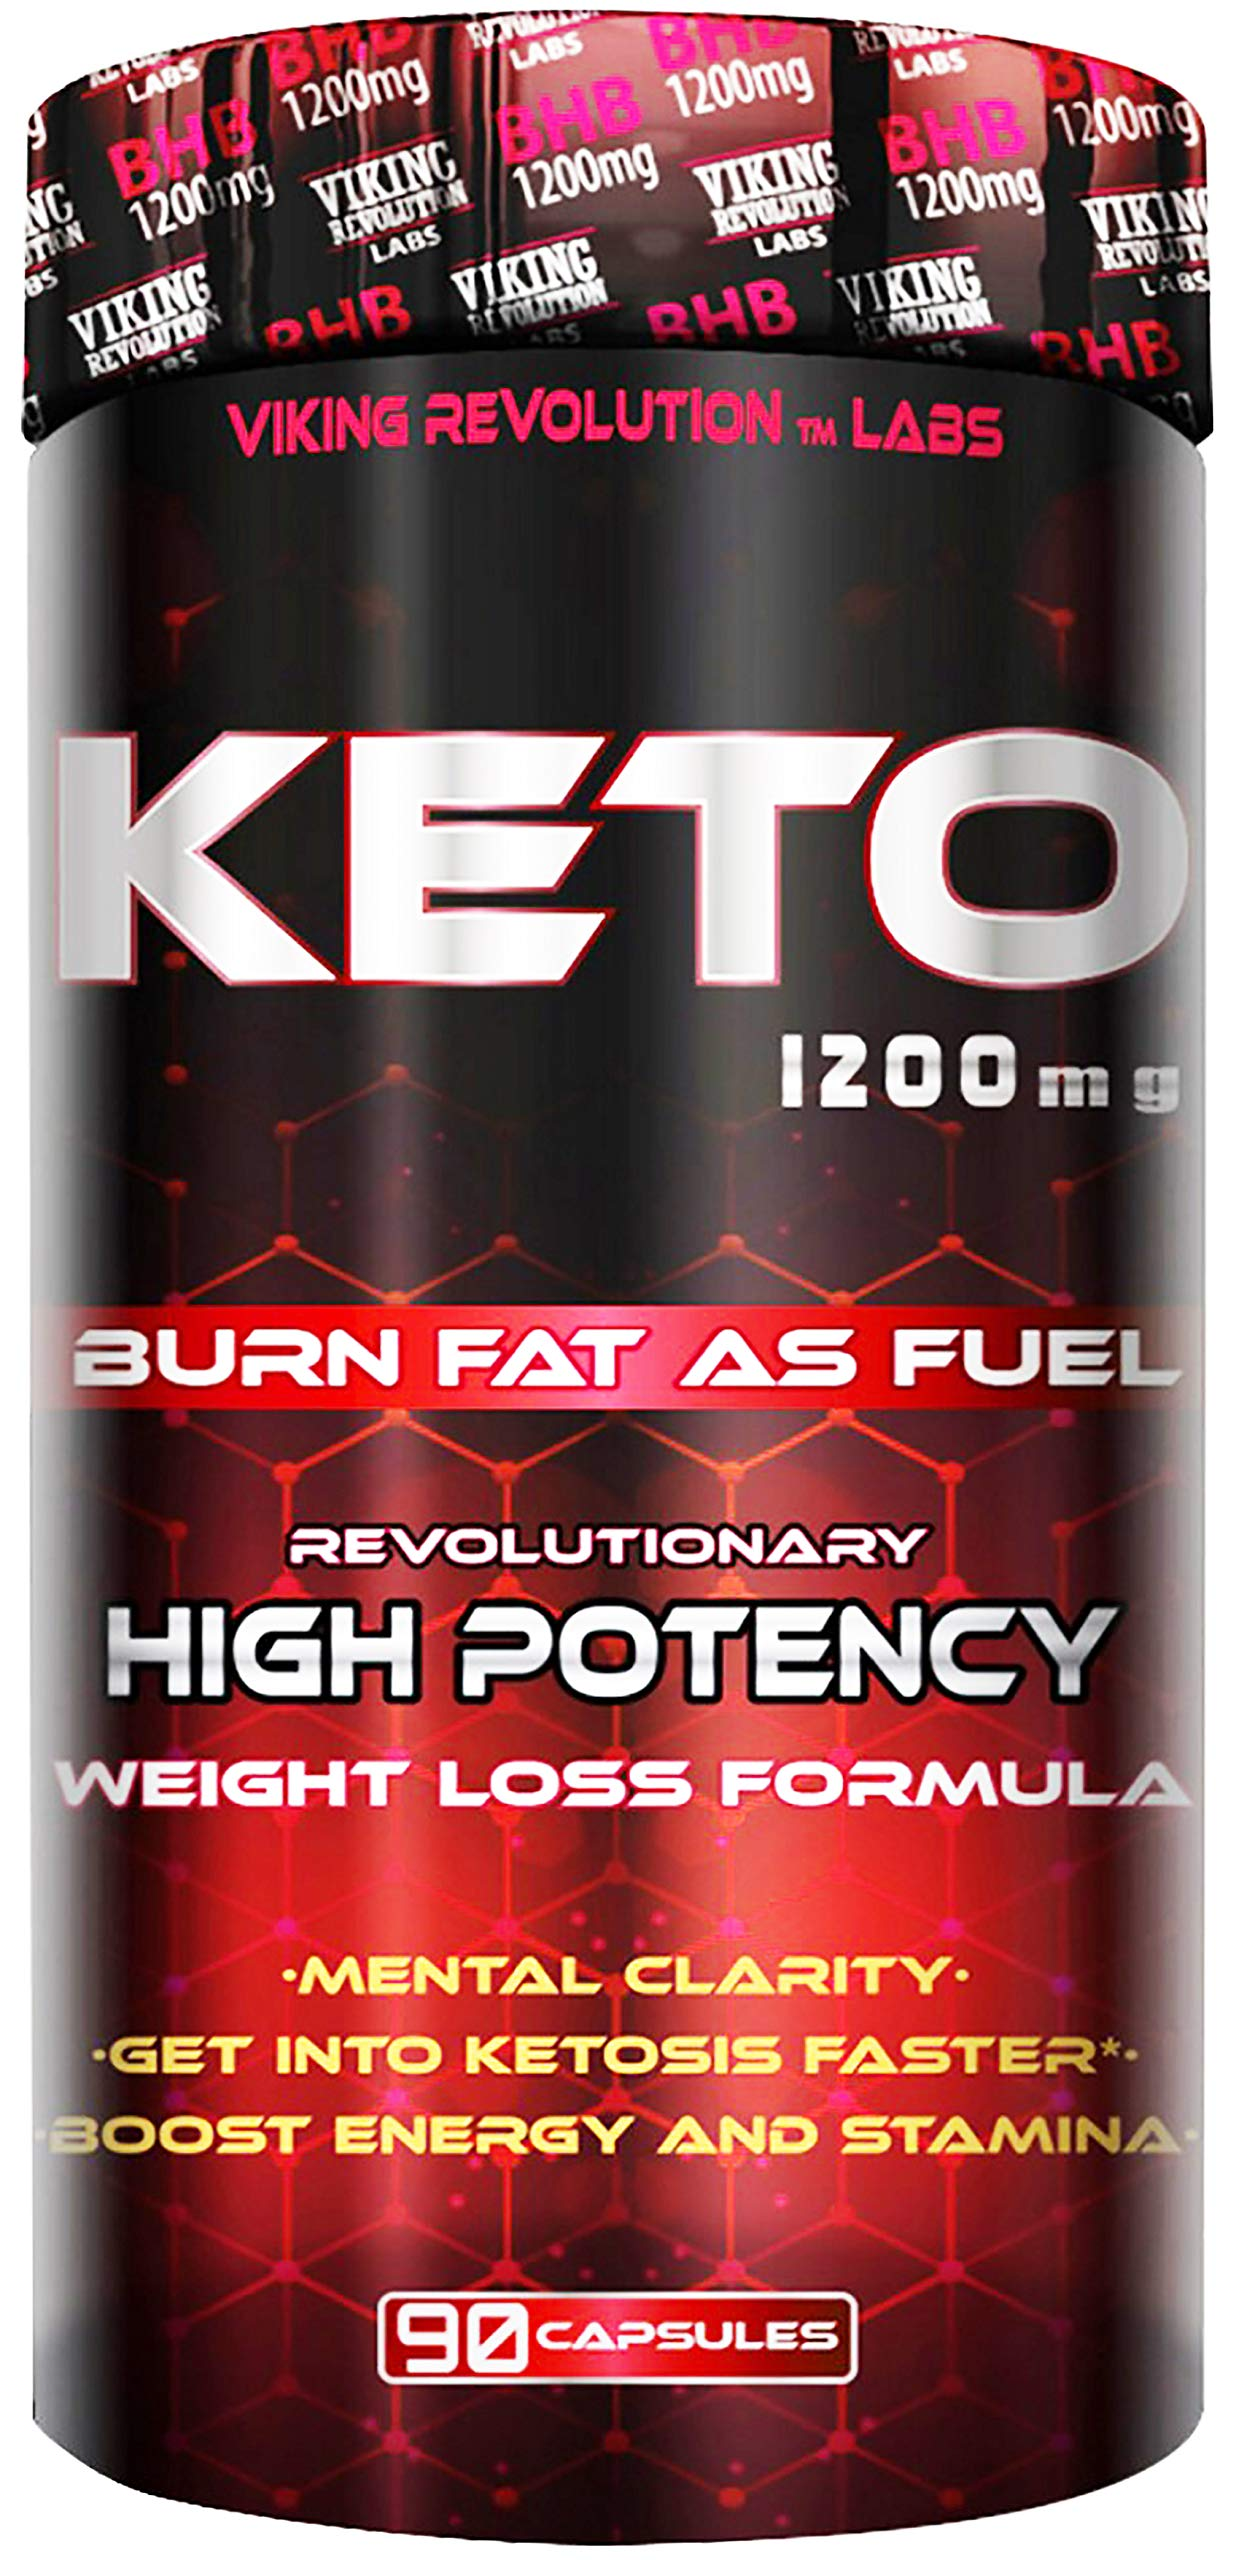 Keto Diet Pills - Weight Loss, Fat Burner Supplement - 1200mg Beta-Hydroxybutyrate, Exogenous Ketones - Formulated to Enter Ketosis, Burn Fat, Enhance Mental Focus & Clarity (90 Capsules) by Viking Revolution